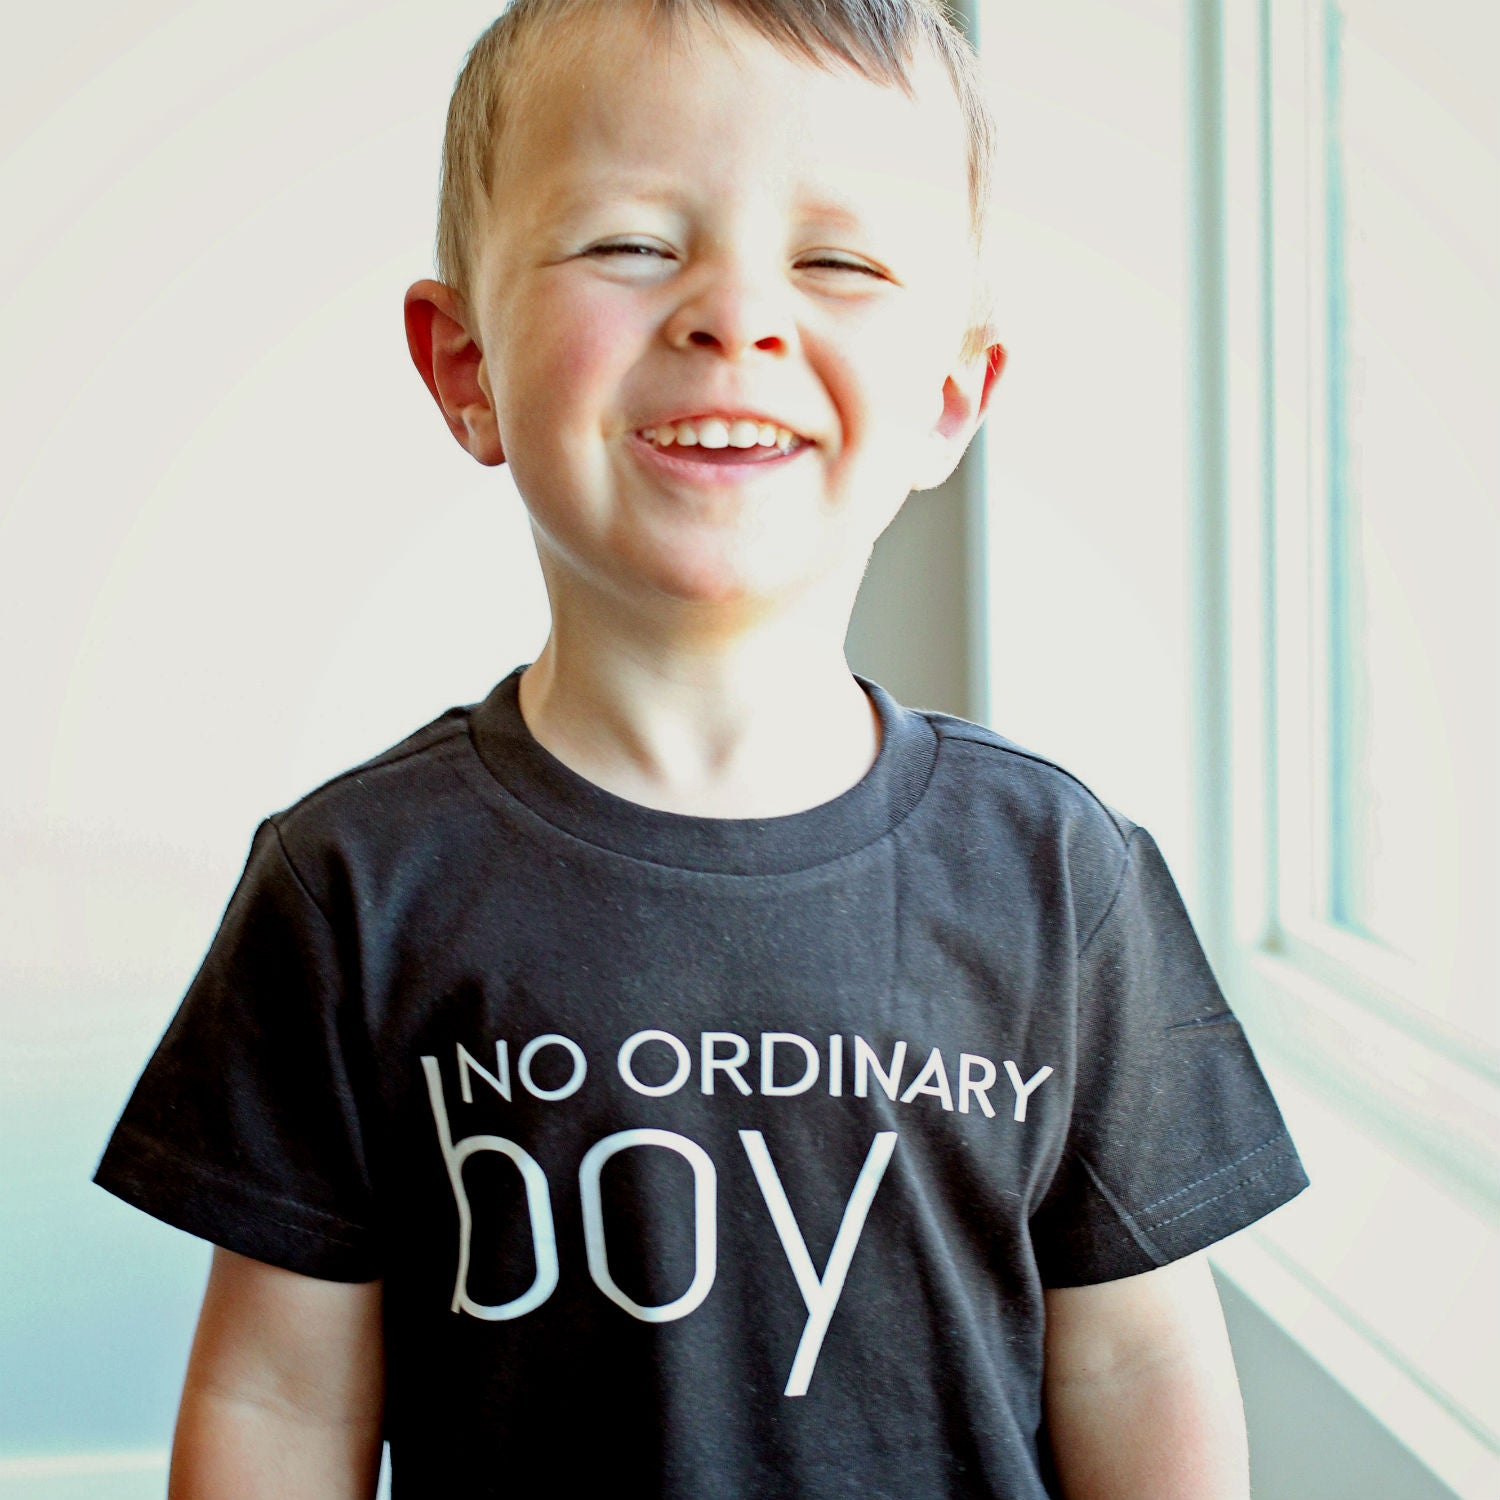 Tee - No Ordinary Boy - Multi-colors